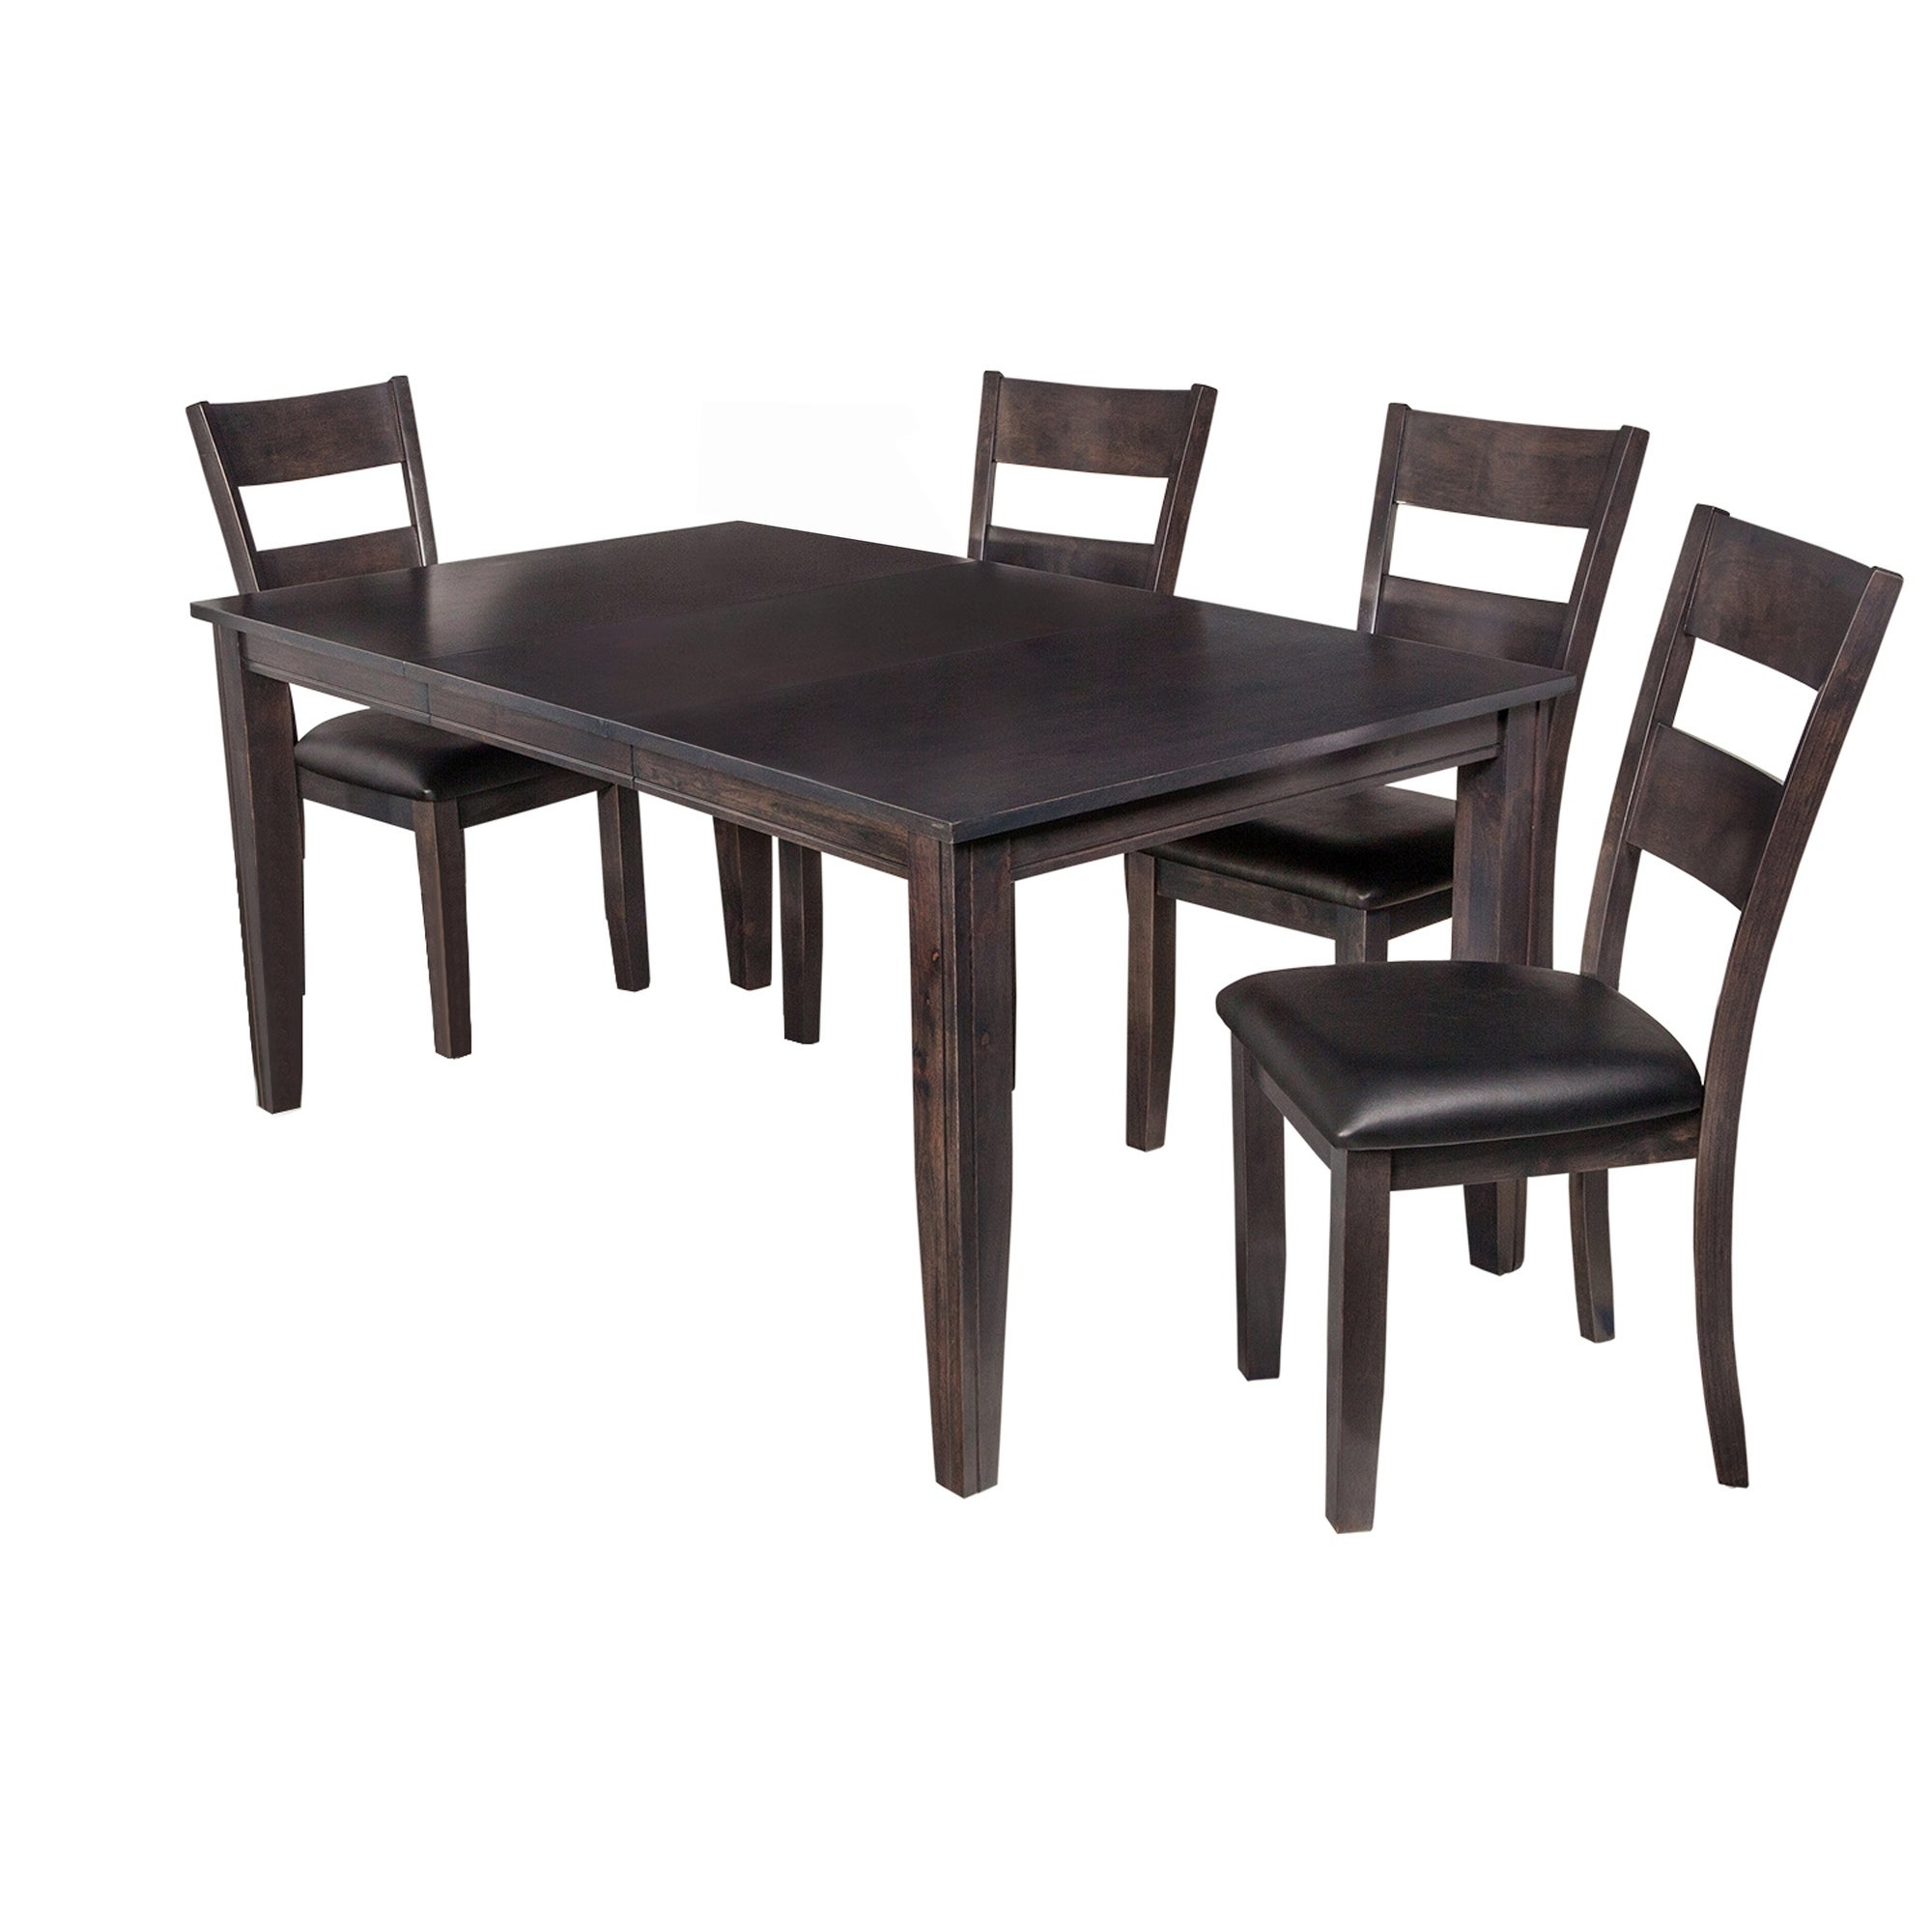 "Shop 5 Piece Solid Wood Dining Set ""aden"", Modern Kitchen Table Set Regarding Well Known Adan 5 Piece Solid Wood Dining Sets (Set Of 5) (#13 of 20)"